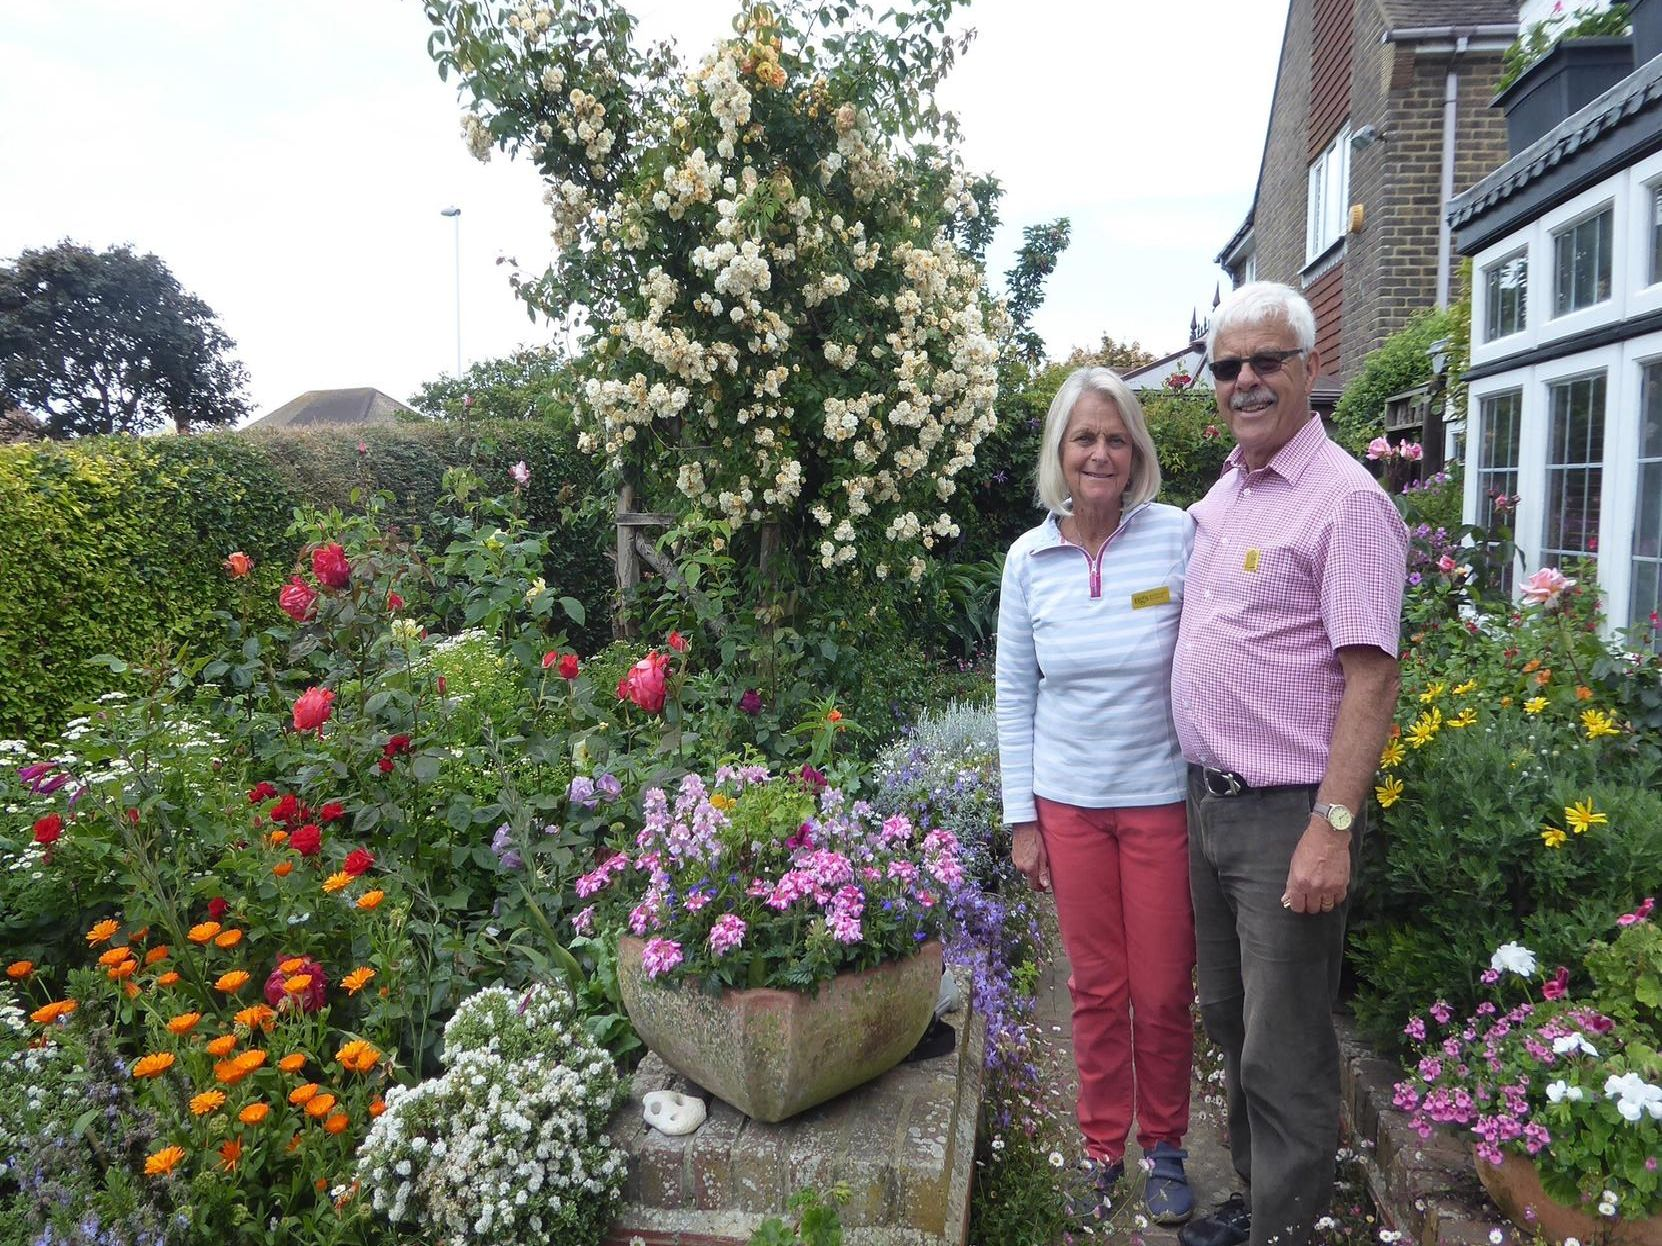 Trevor and Jennie Rollings opened up their garden in Goring for the very last time at the weekend